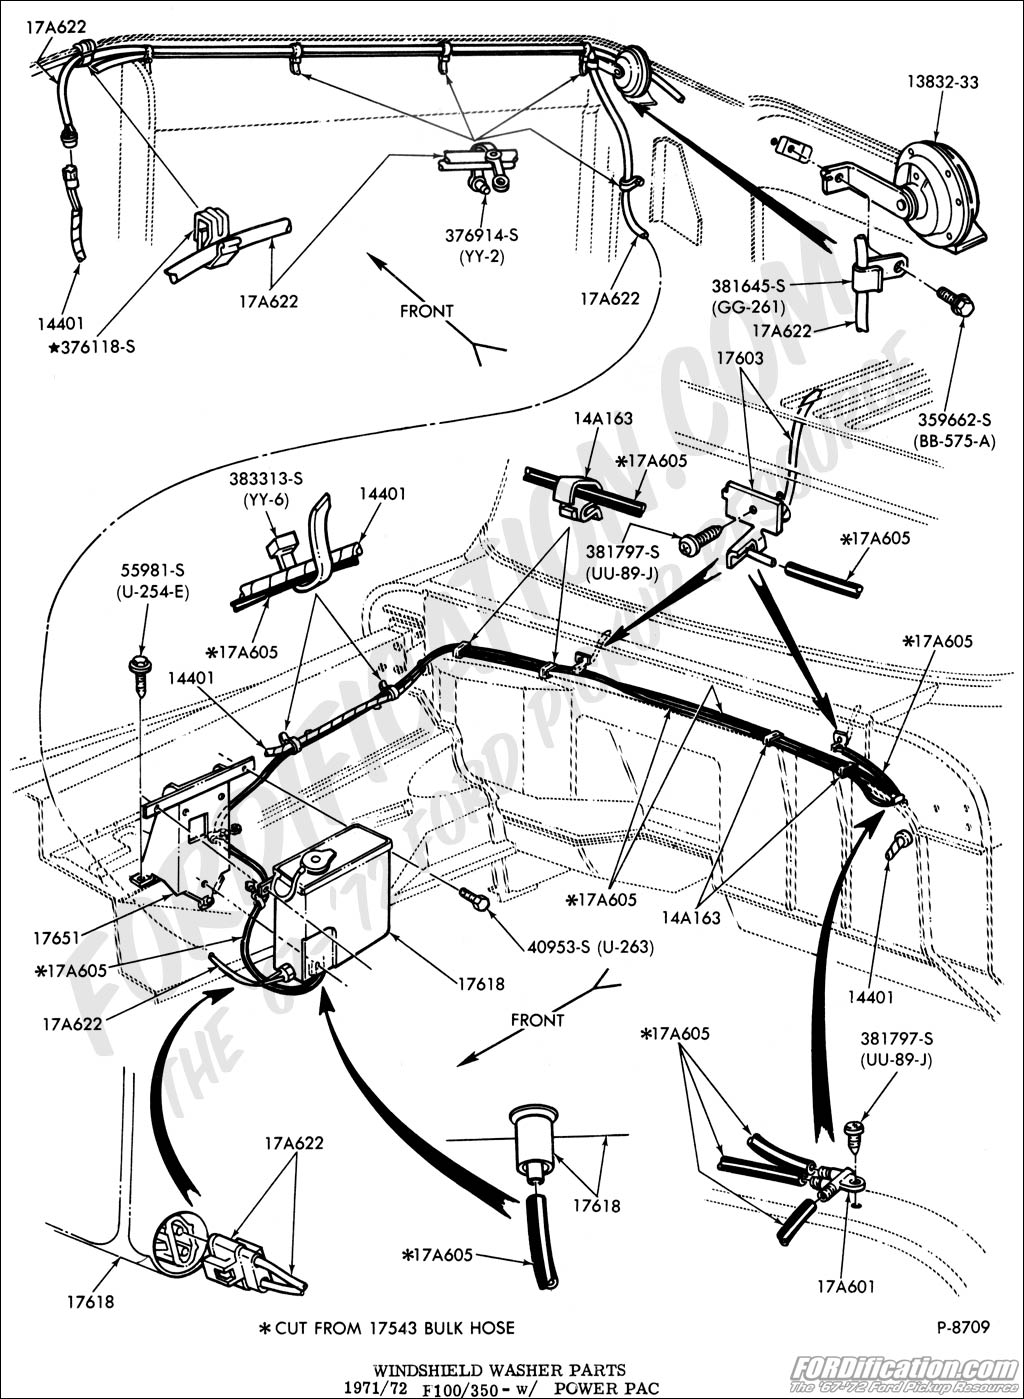 2011 Ford Mustang Fuse Box Diagram Under Hood Under Dash - Schematic  Chevy Under Hood Wiring on under hood battery, under hood gauges, under hood mirrors, under hood painting, under hood inverter, under hood components, under hood dimensions, under hood shocks, under hood parts, under hood paint, under hood blue, under hood design, under hood building,